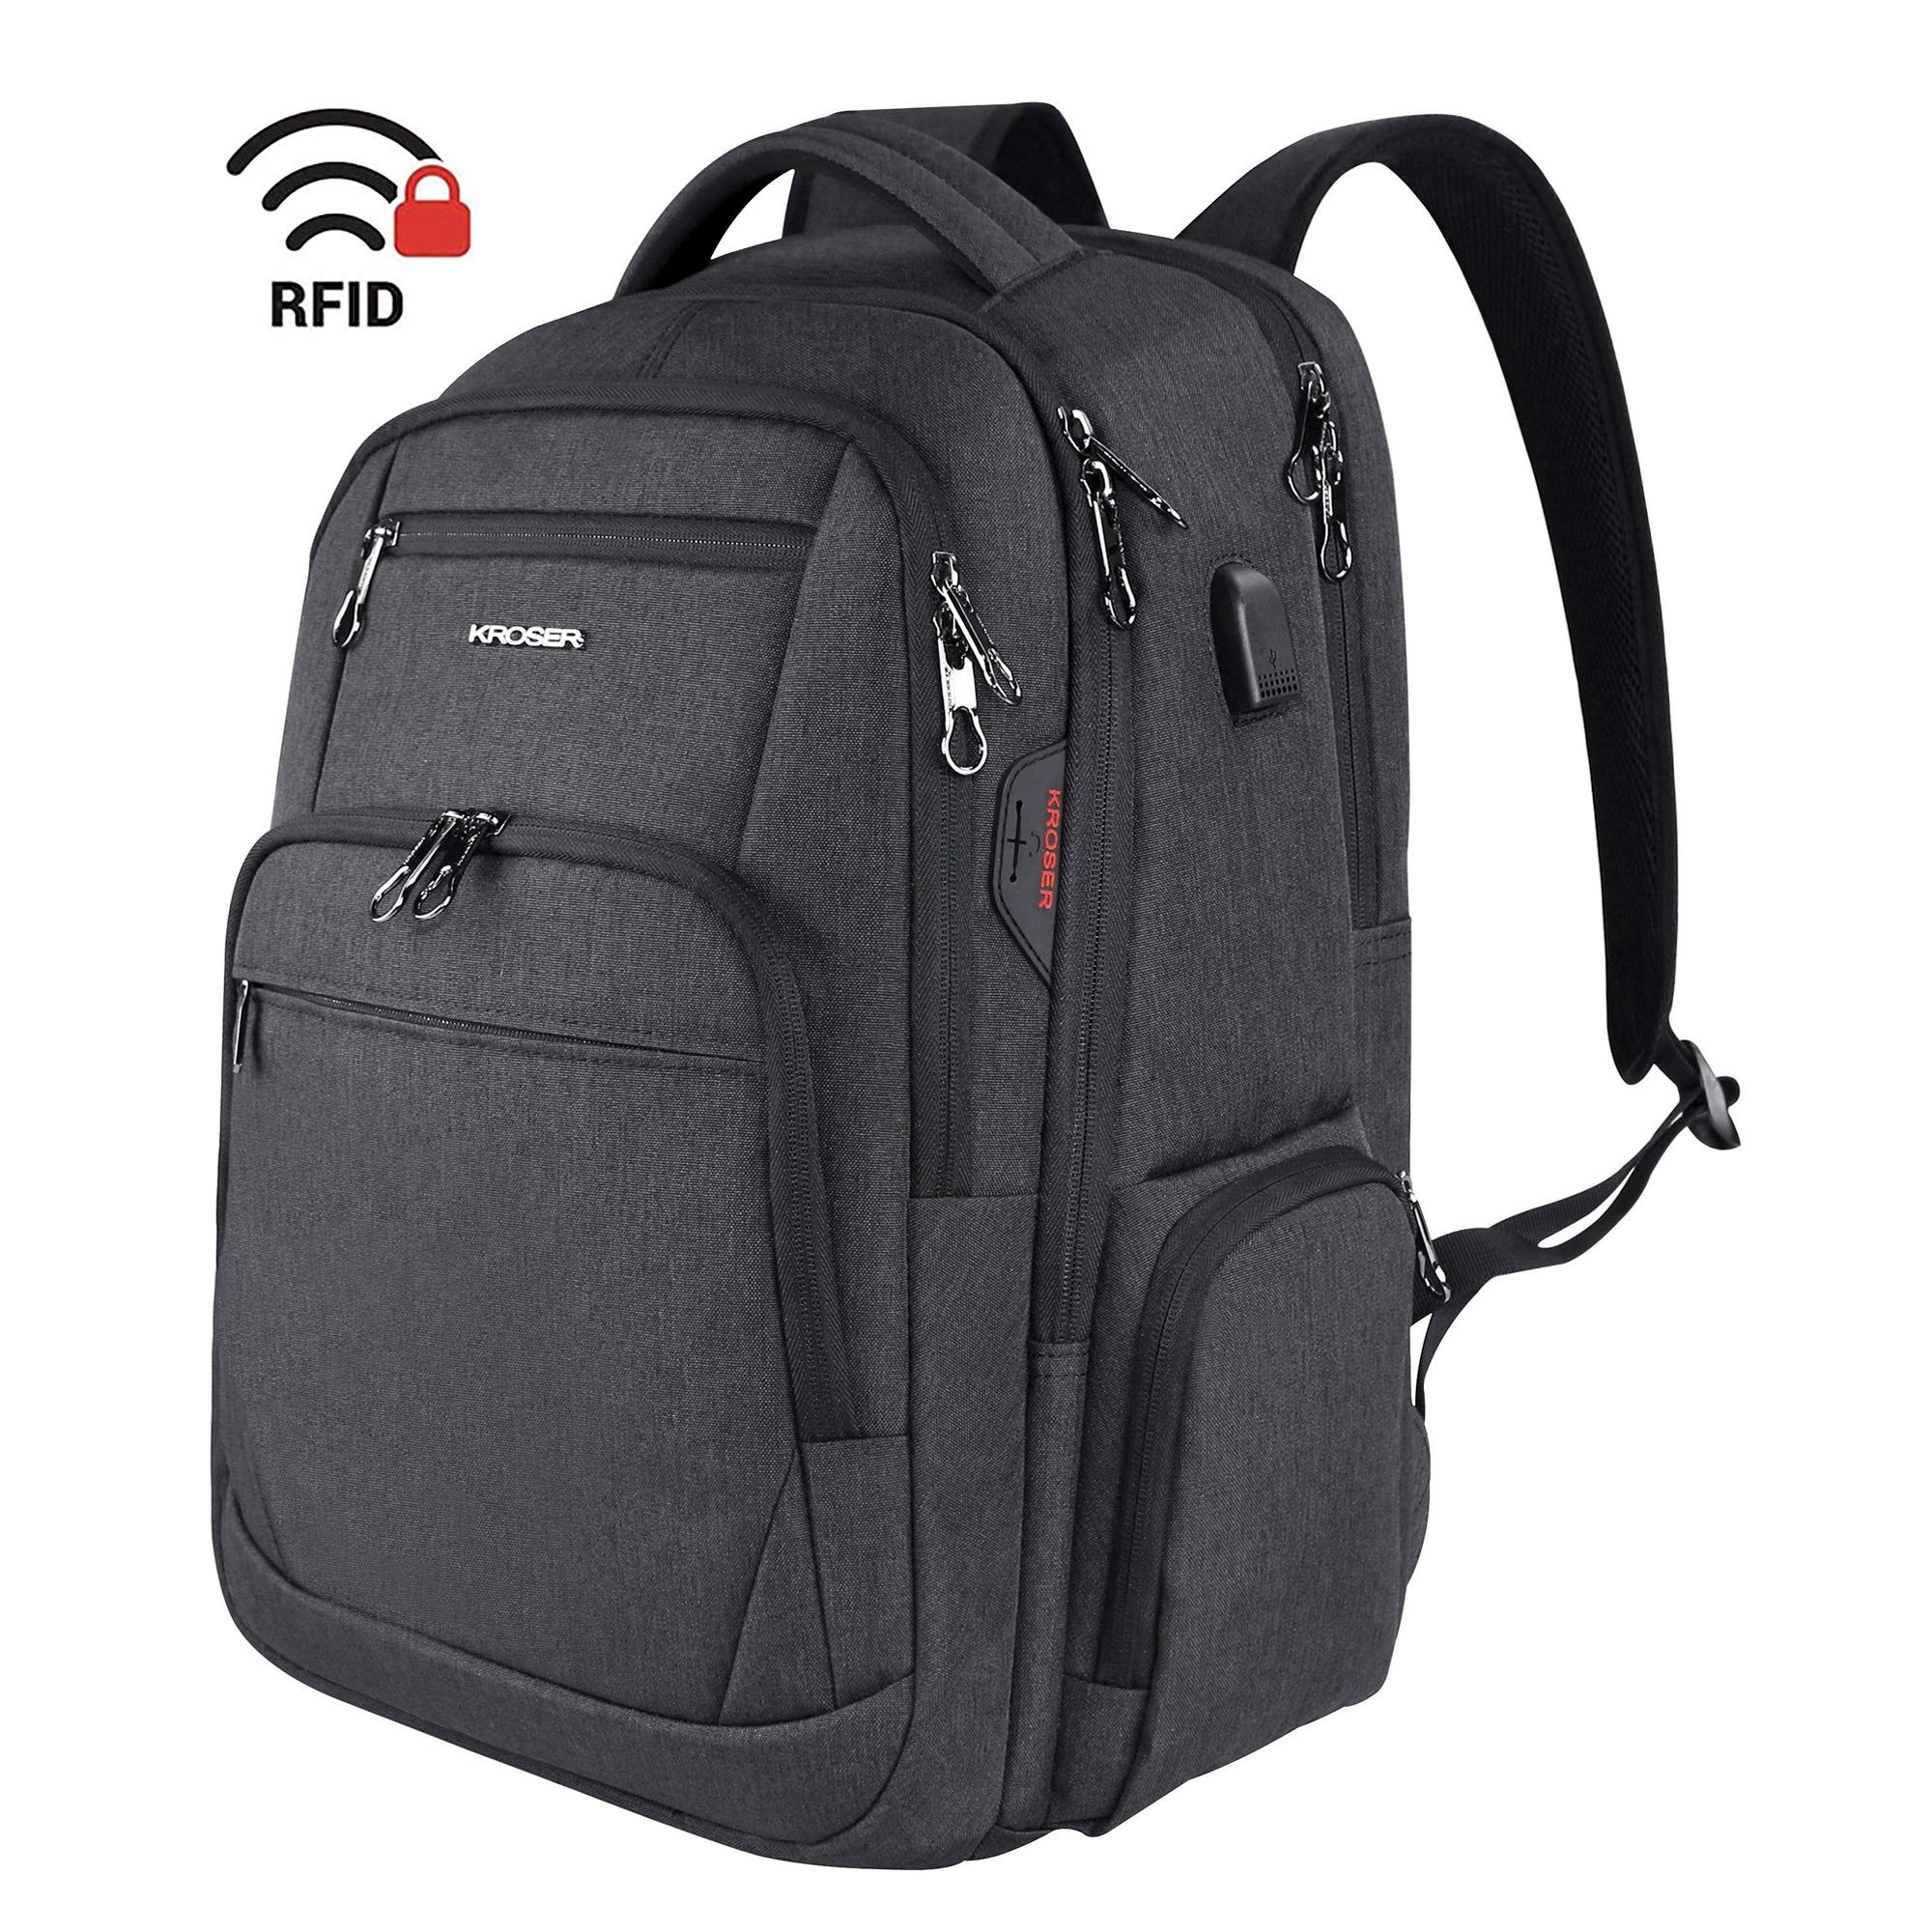 Travel Laptop Backpack 17.3 Inch Large Computer Backpack Water-Repellent School Daypack with USB Charging Port & Headphone Interface RFID Pockets for Work/Business/College/Men/Women